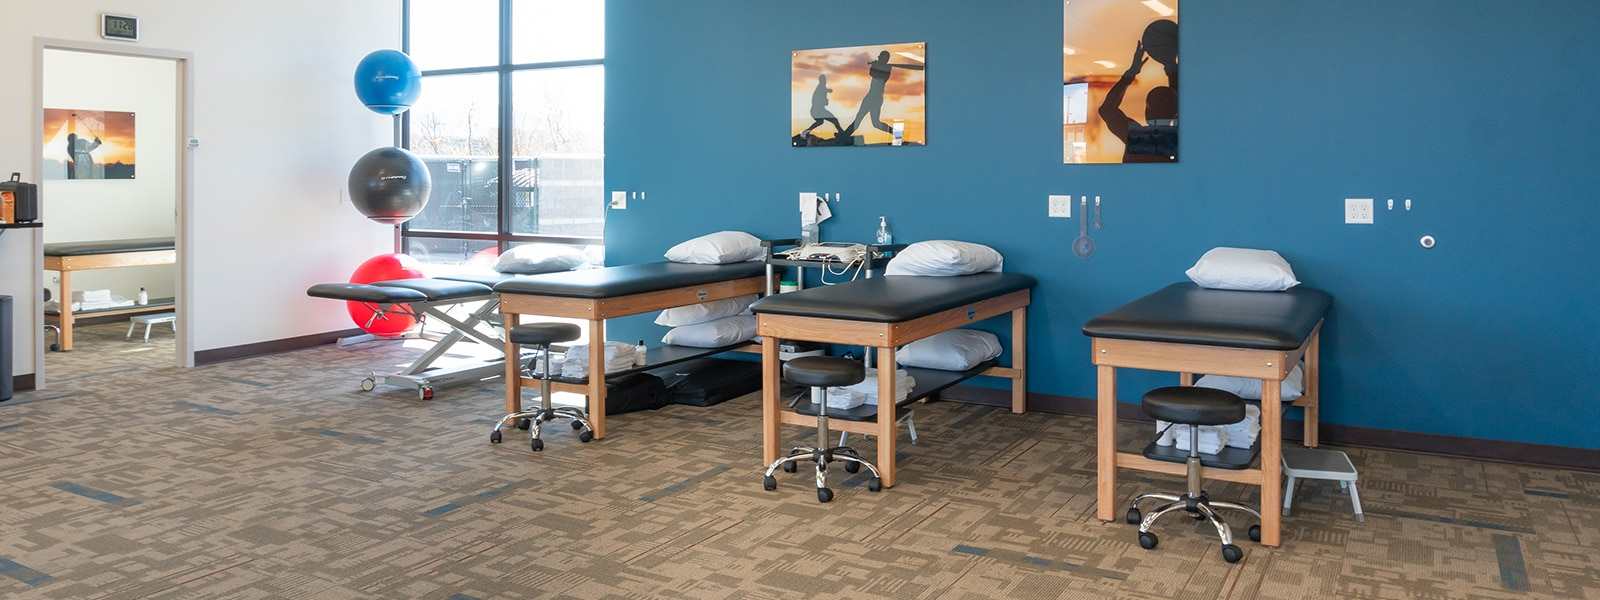 West Valley Physical Therapy